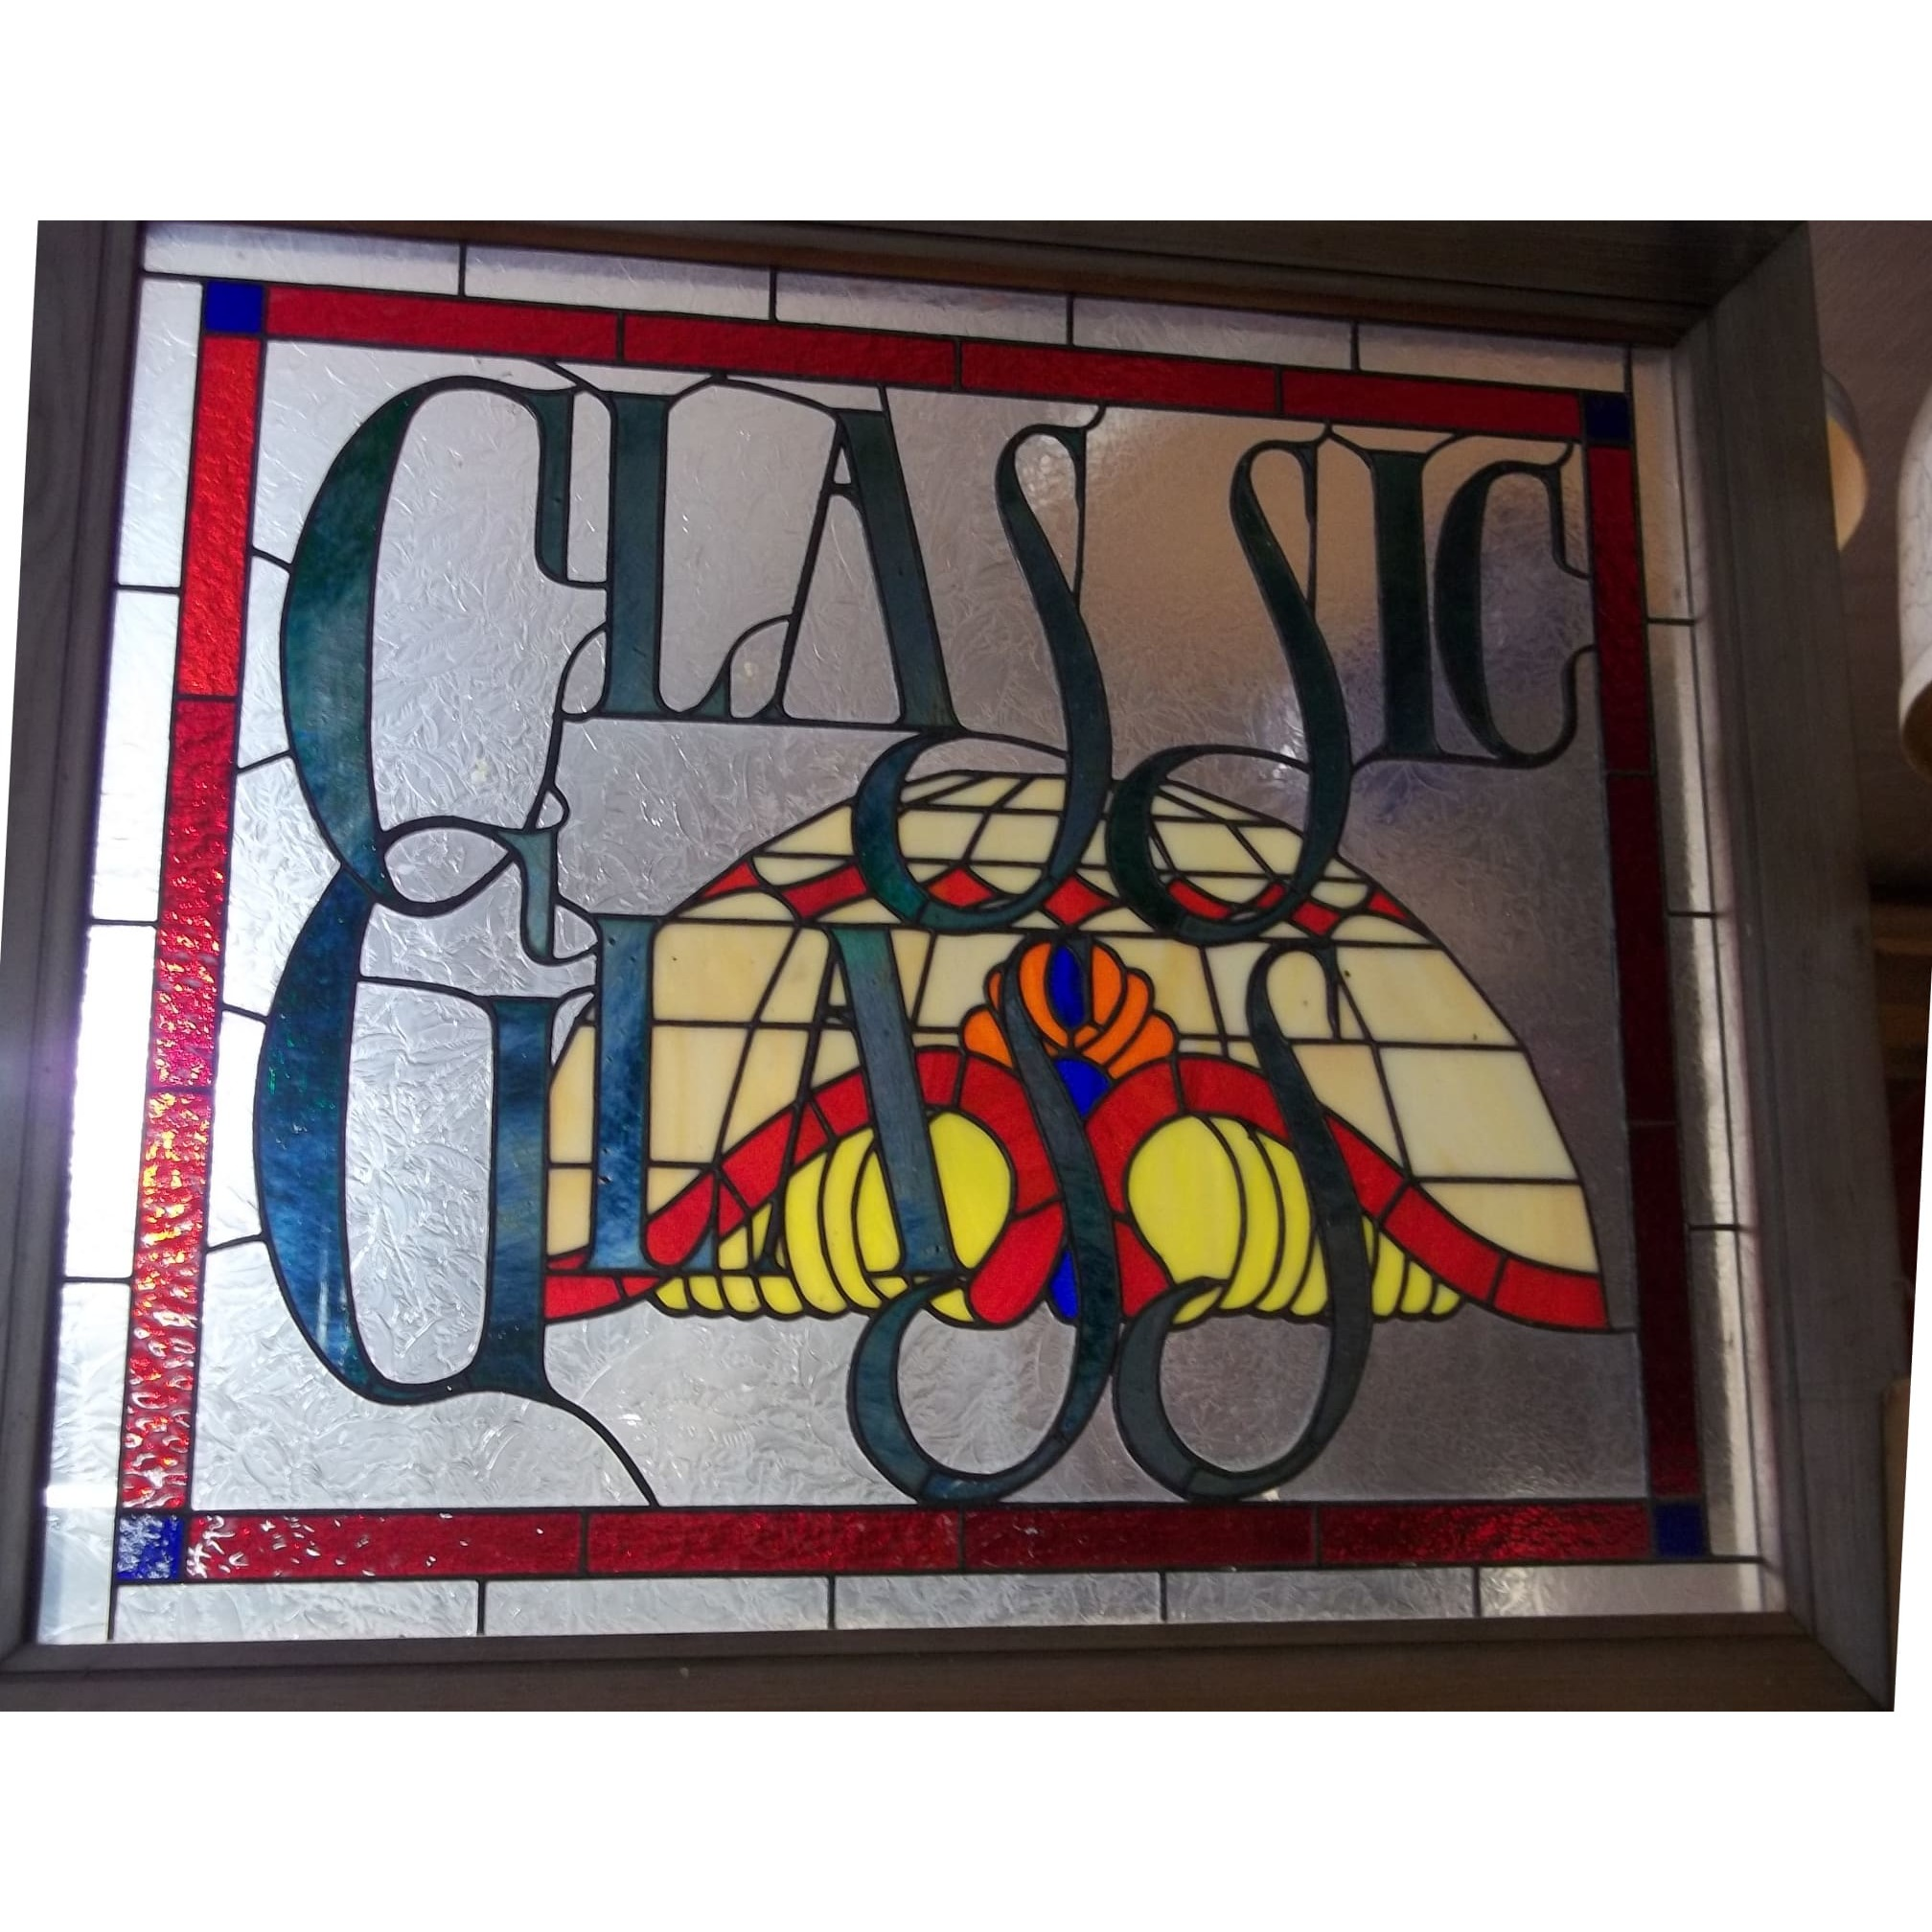 Classic Glass Leamington Spa 07546 713972